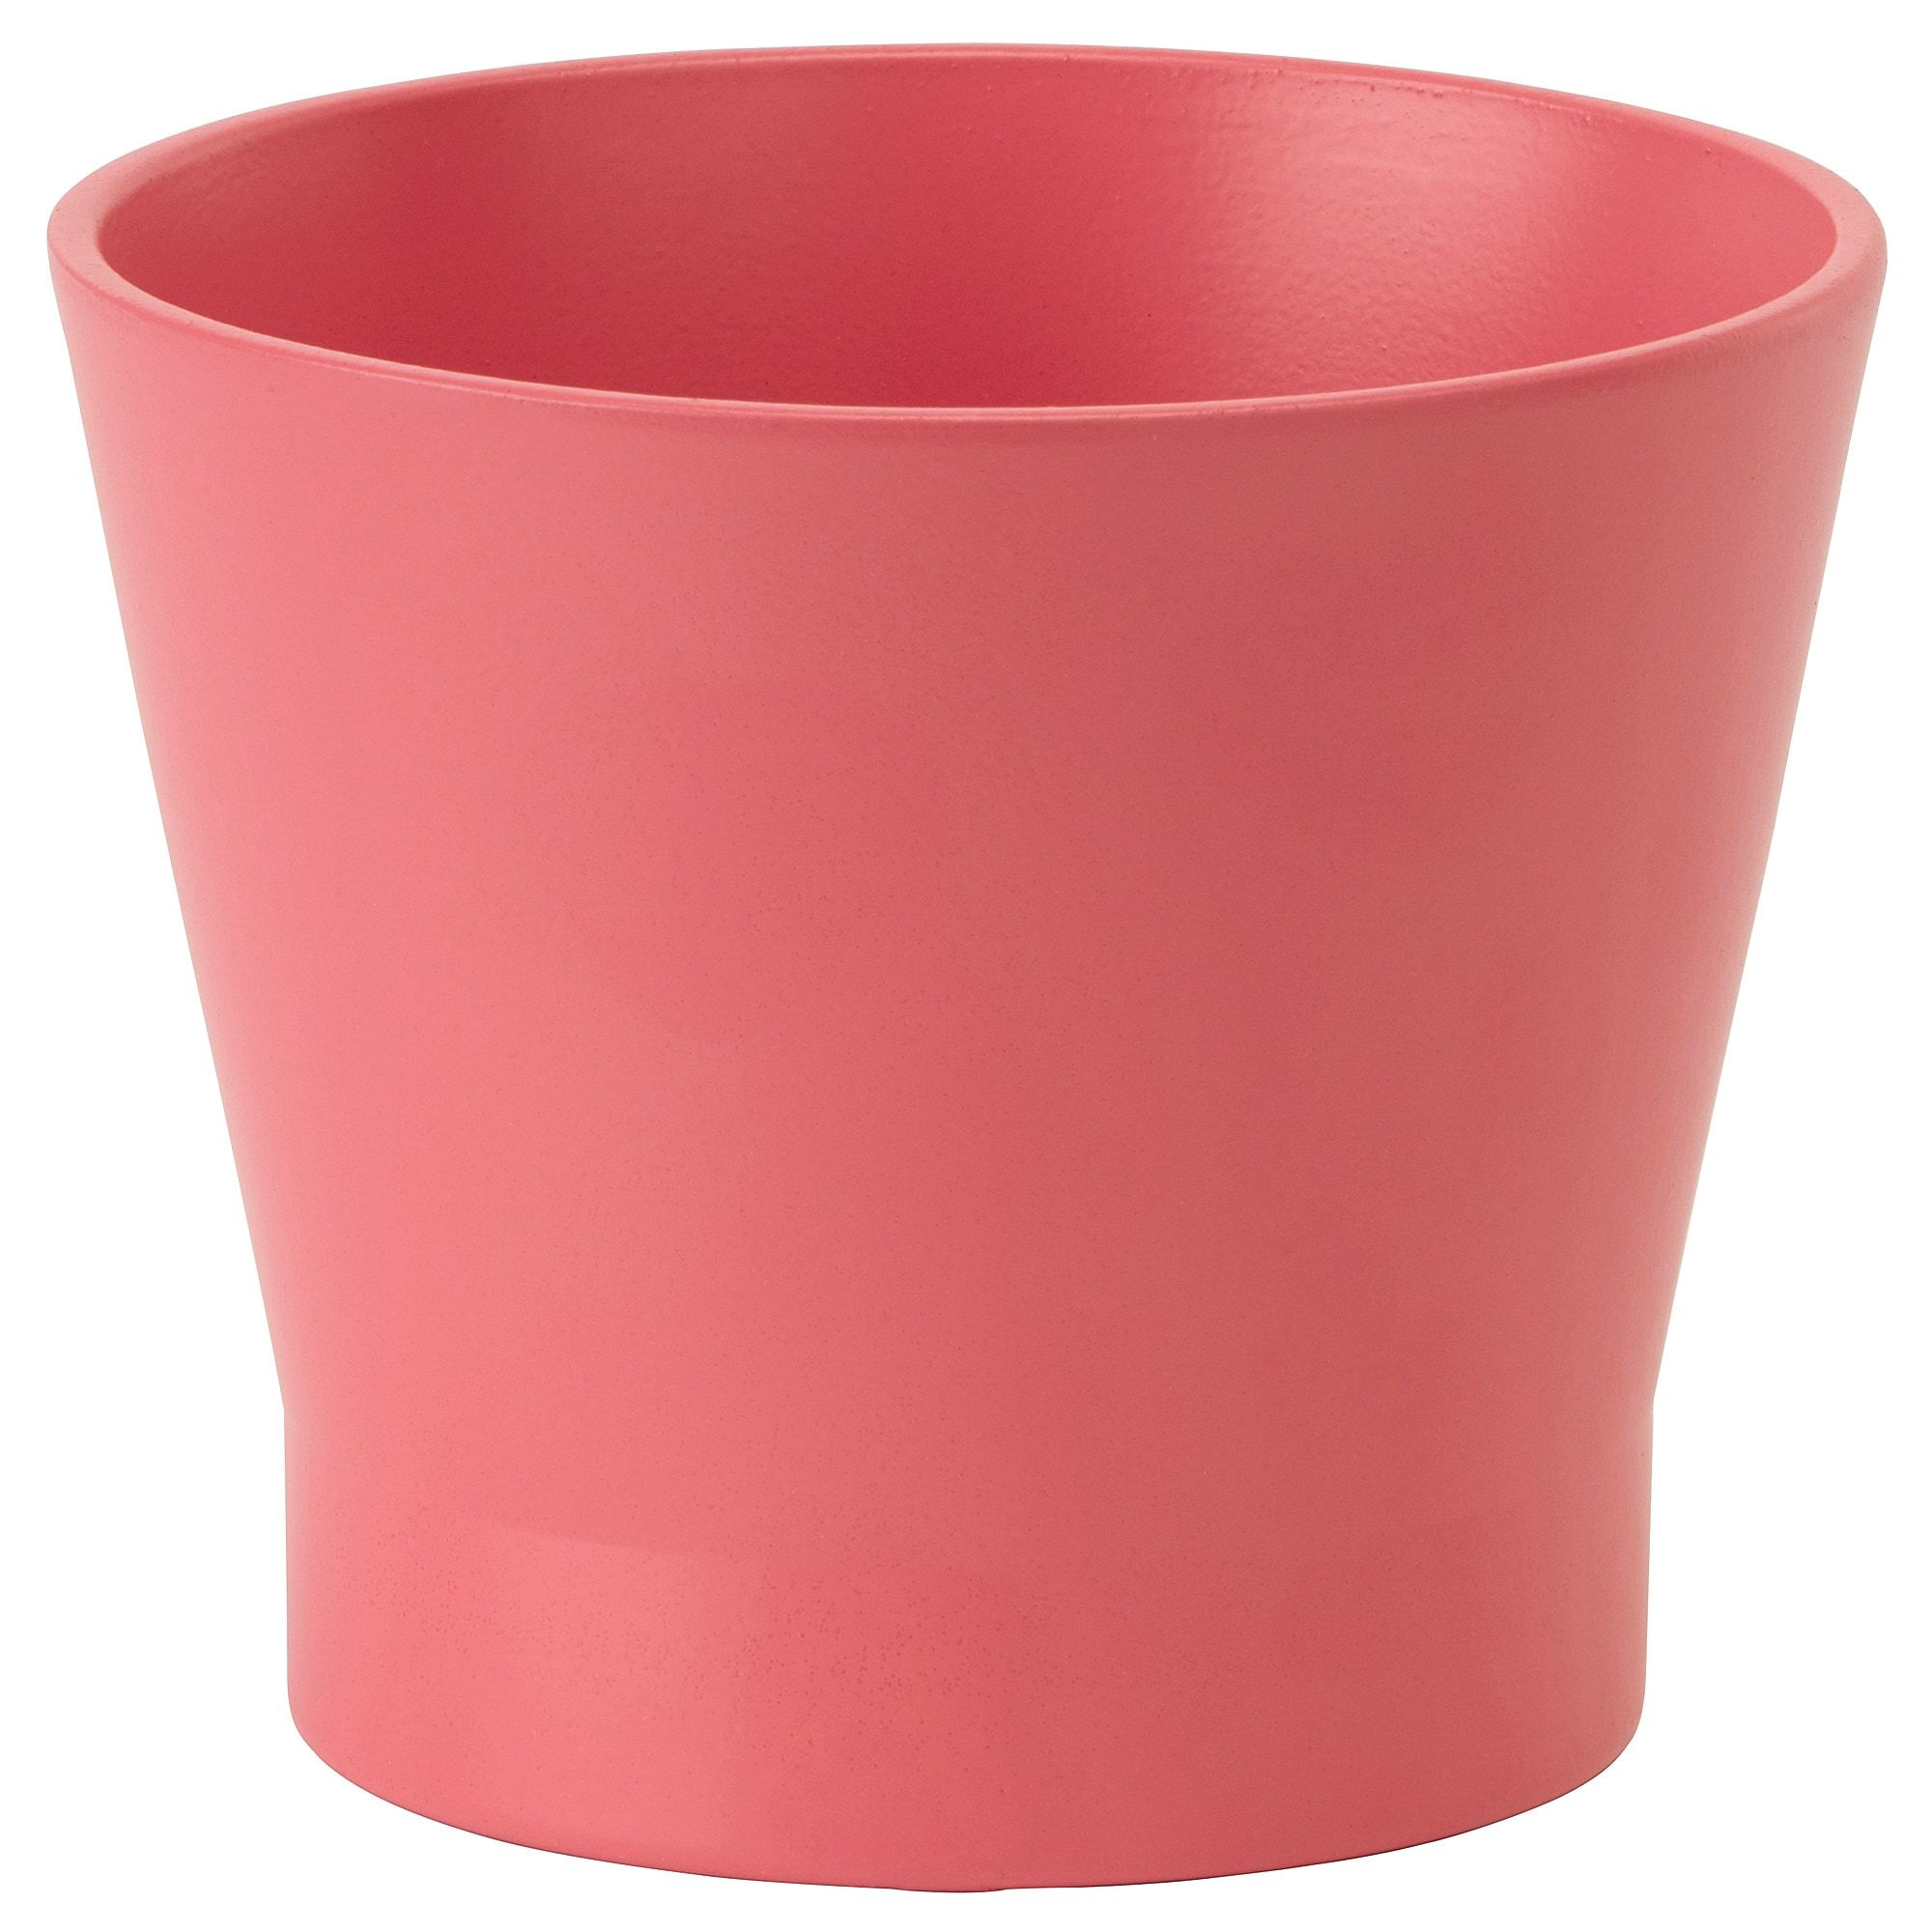 14 In Dia Smooth Handle Red Clay Pot Rct 310a R The Home Depot Clay Plant Pots Clay Pots Clay Planters